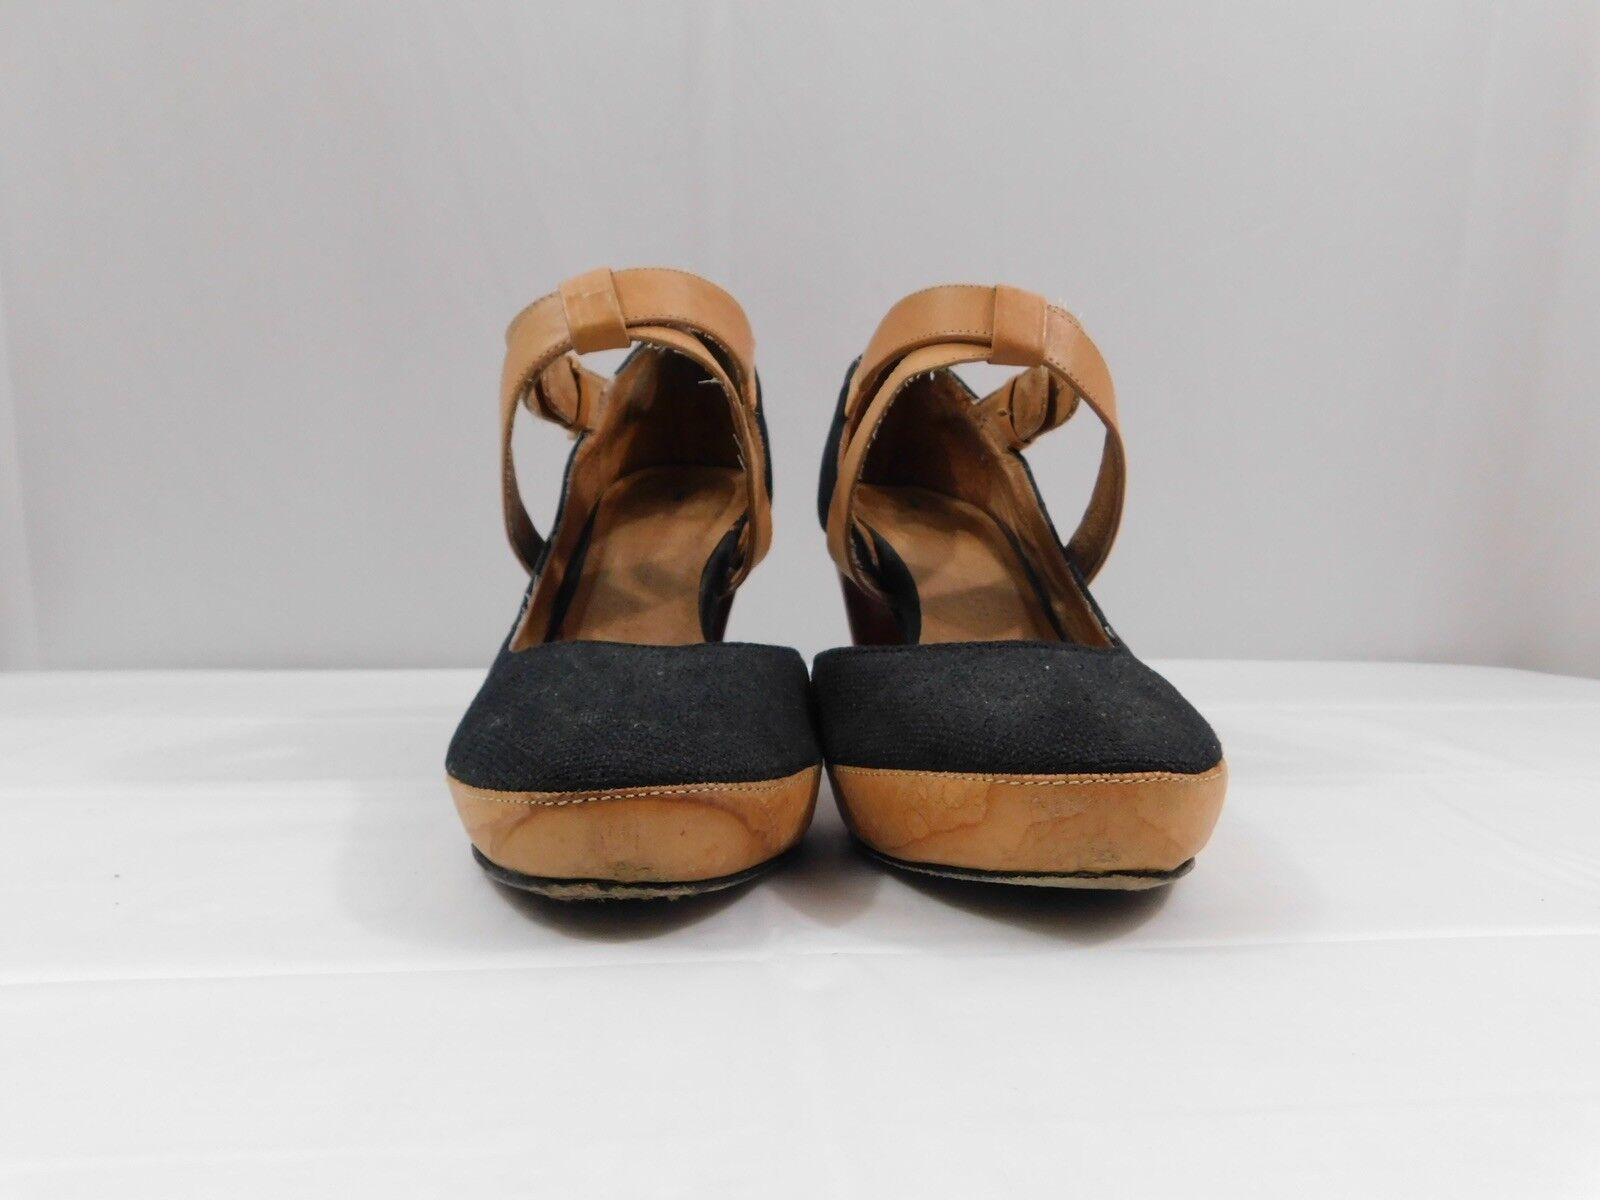 Anthropologie Schuler and Sons Women's  Mary Jane High Heels Size 9M